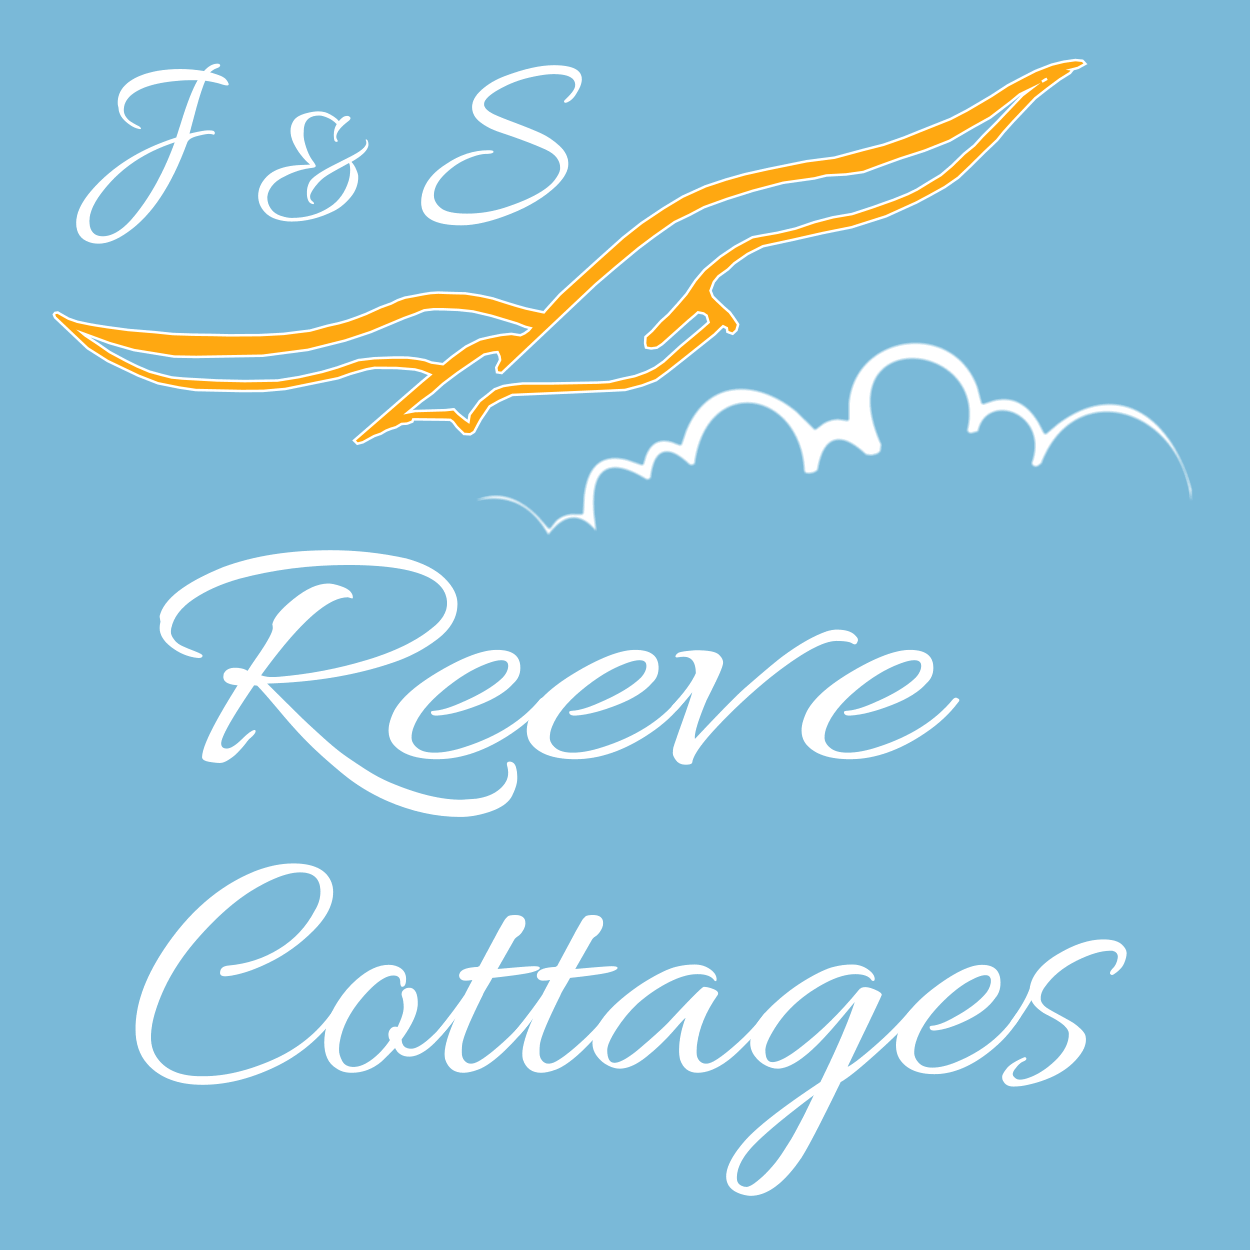 J & S Reeve Cottages logo